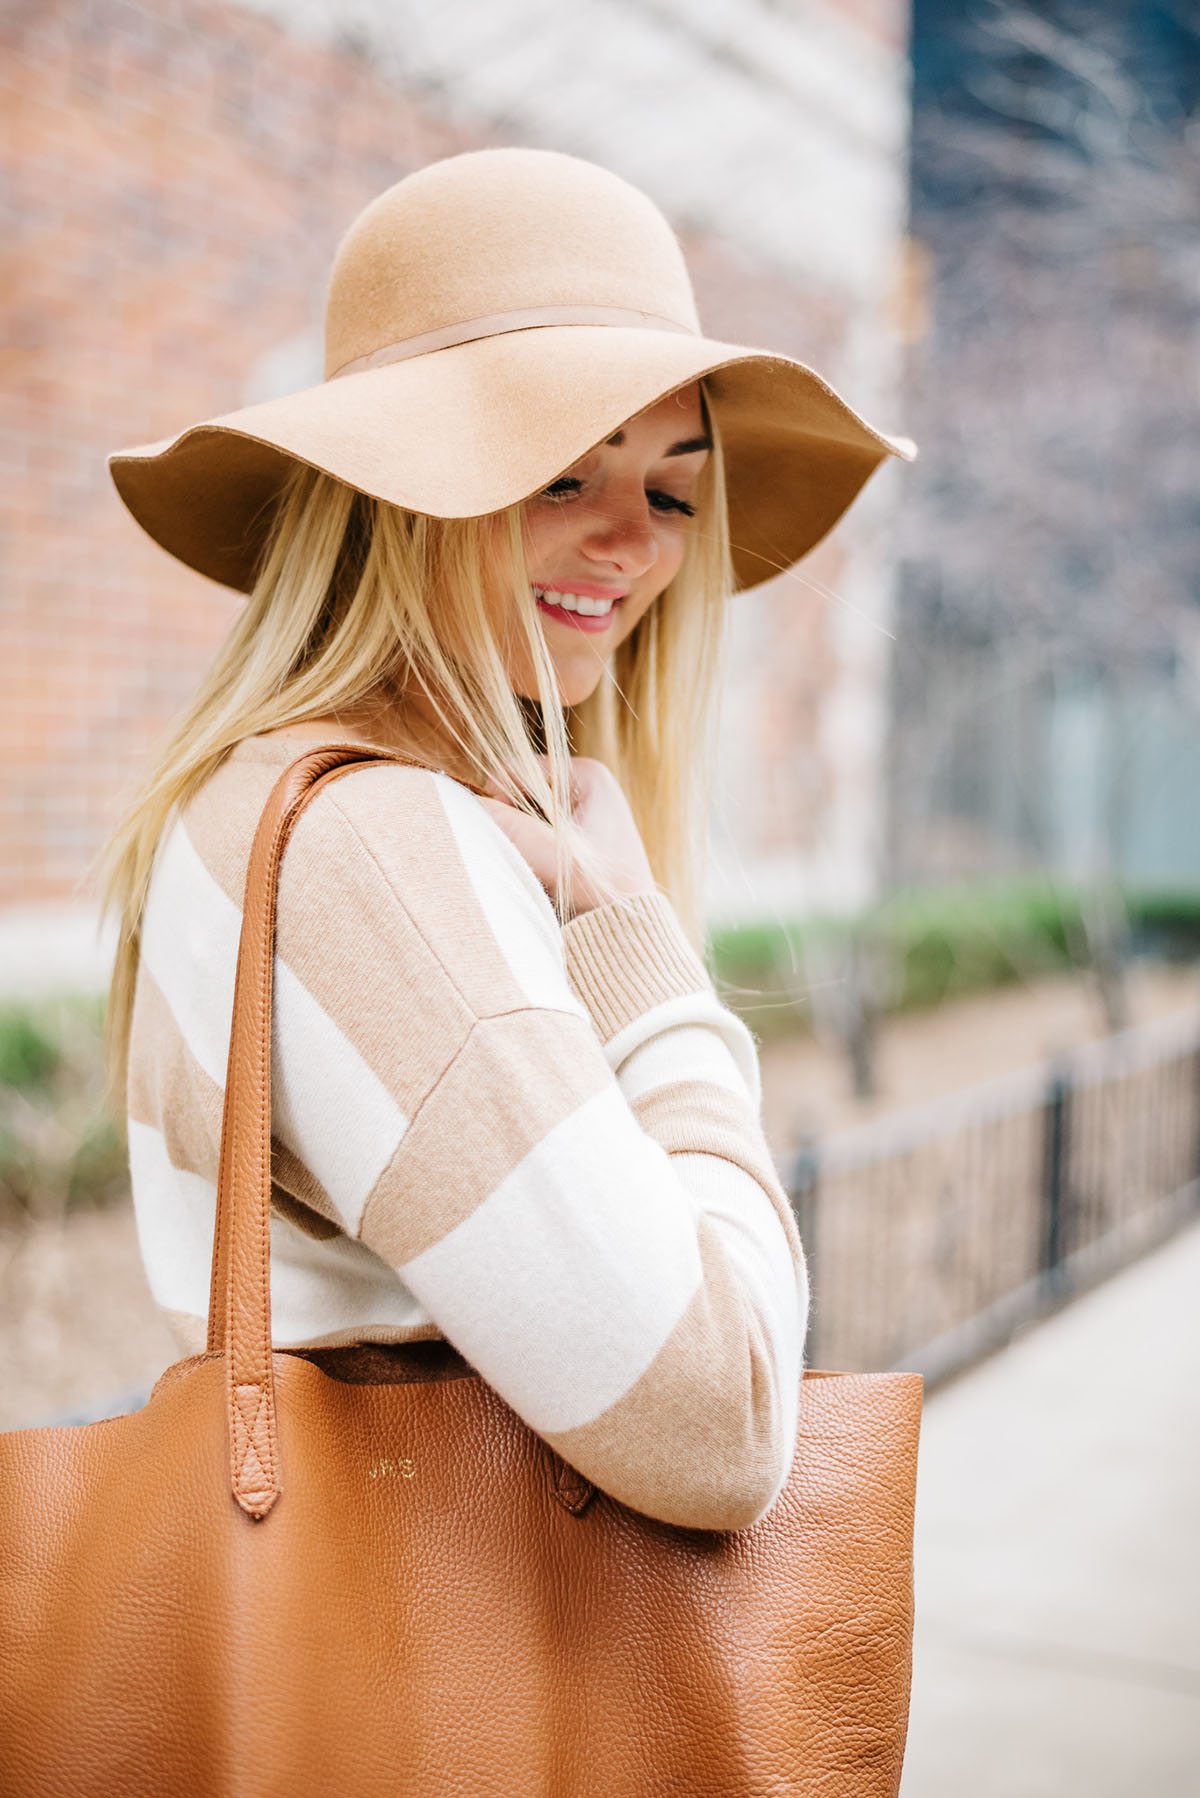 Bows & Sequins wearing a camel hat, striped sweater, and monogrammed leather Cuyana tote.